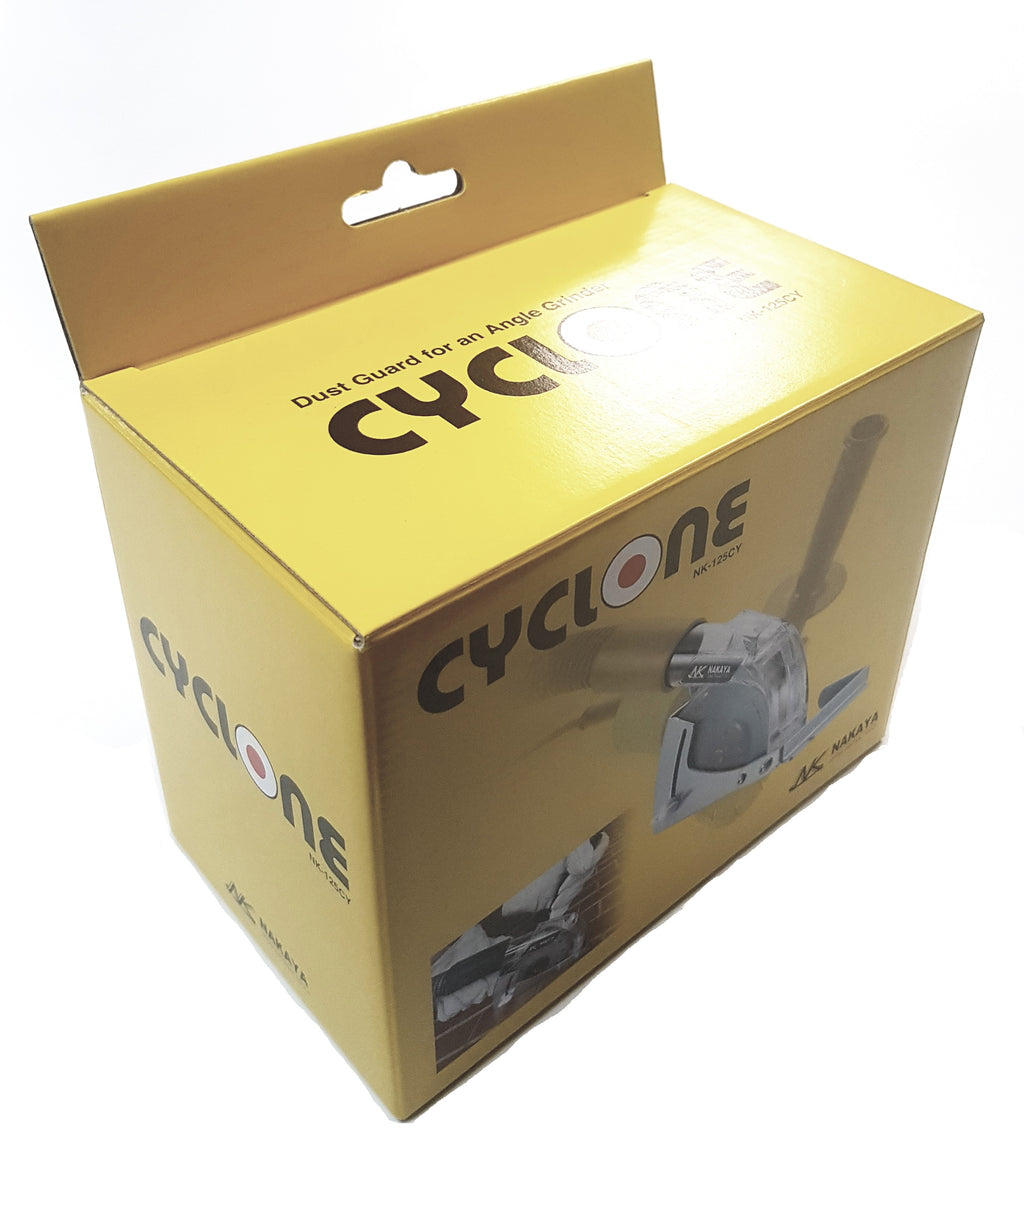 Cyclone DCG 115/125 - Clear Cutting Guard/ Dust Shroud